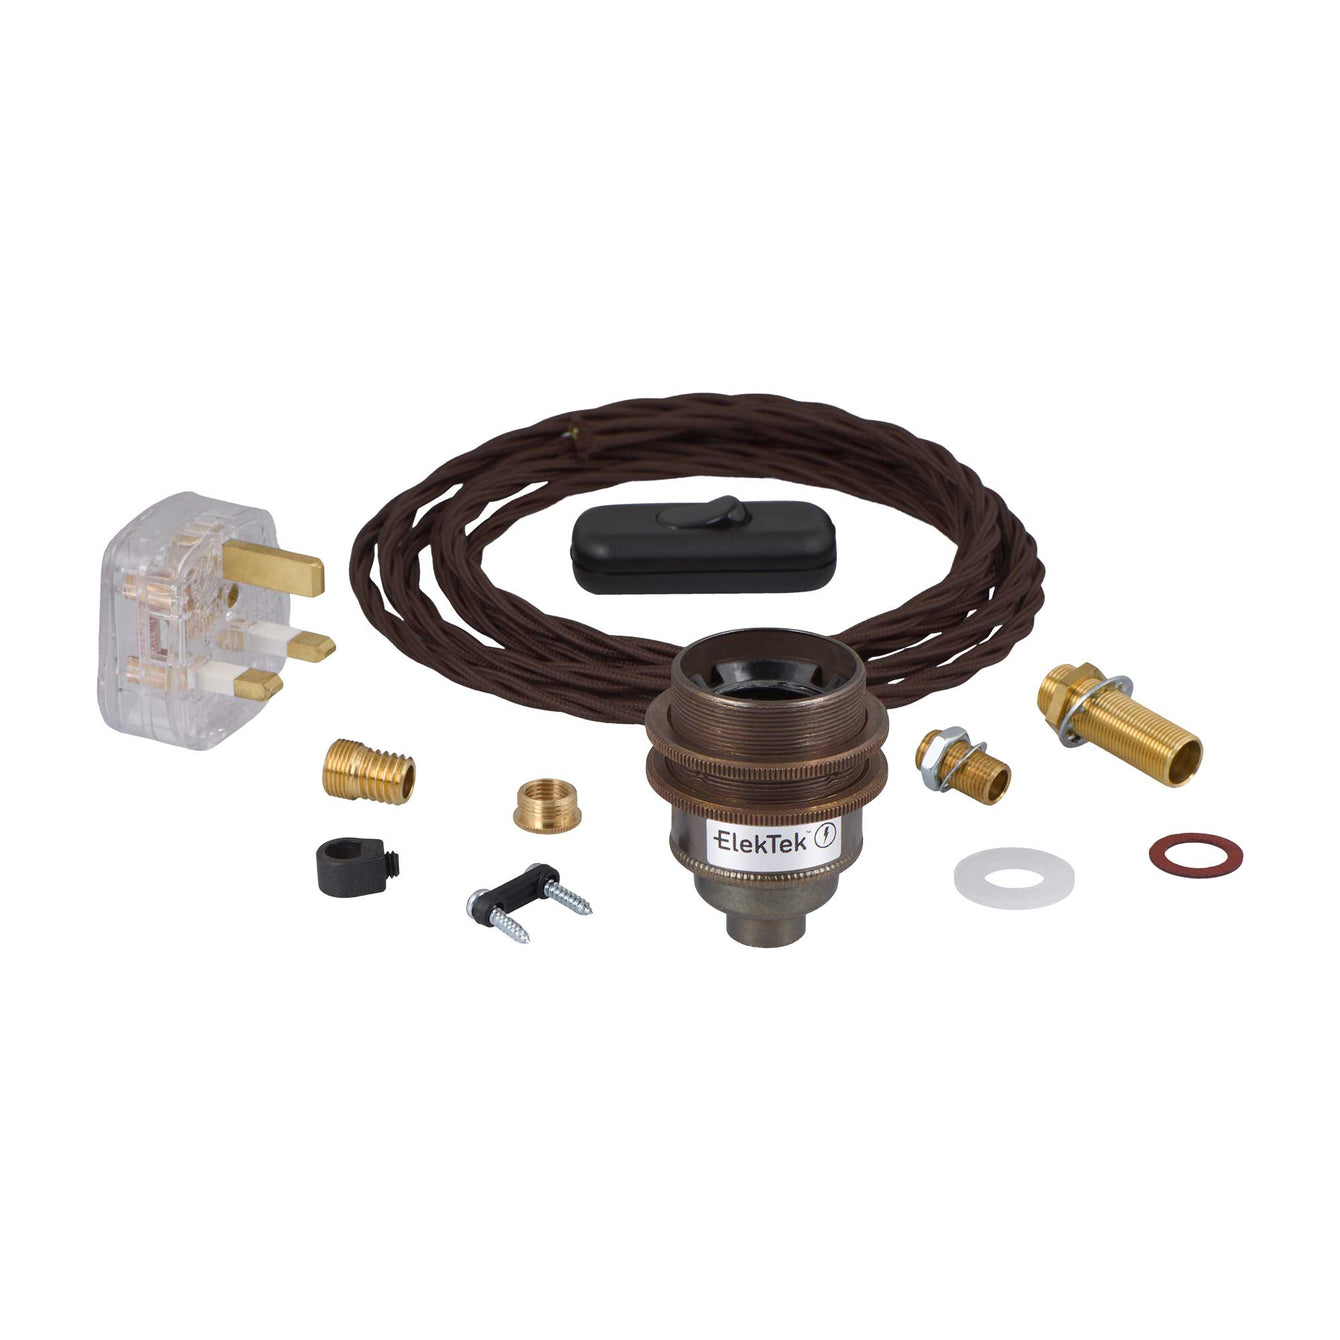 ElekTek Premium Lamp Kit Antique Brass Shade Ring E27 Lamp Holder with Flex, In Line Switch and 3A UK Plug - Buy It Better